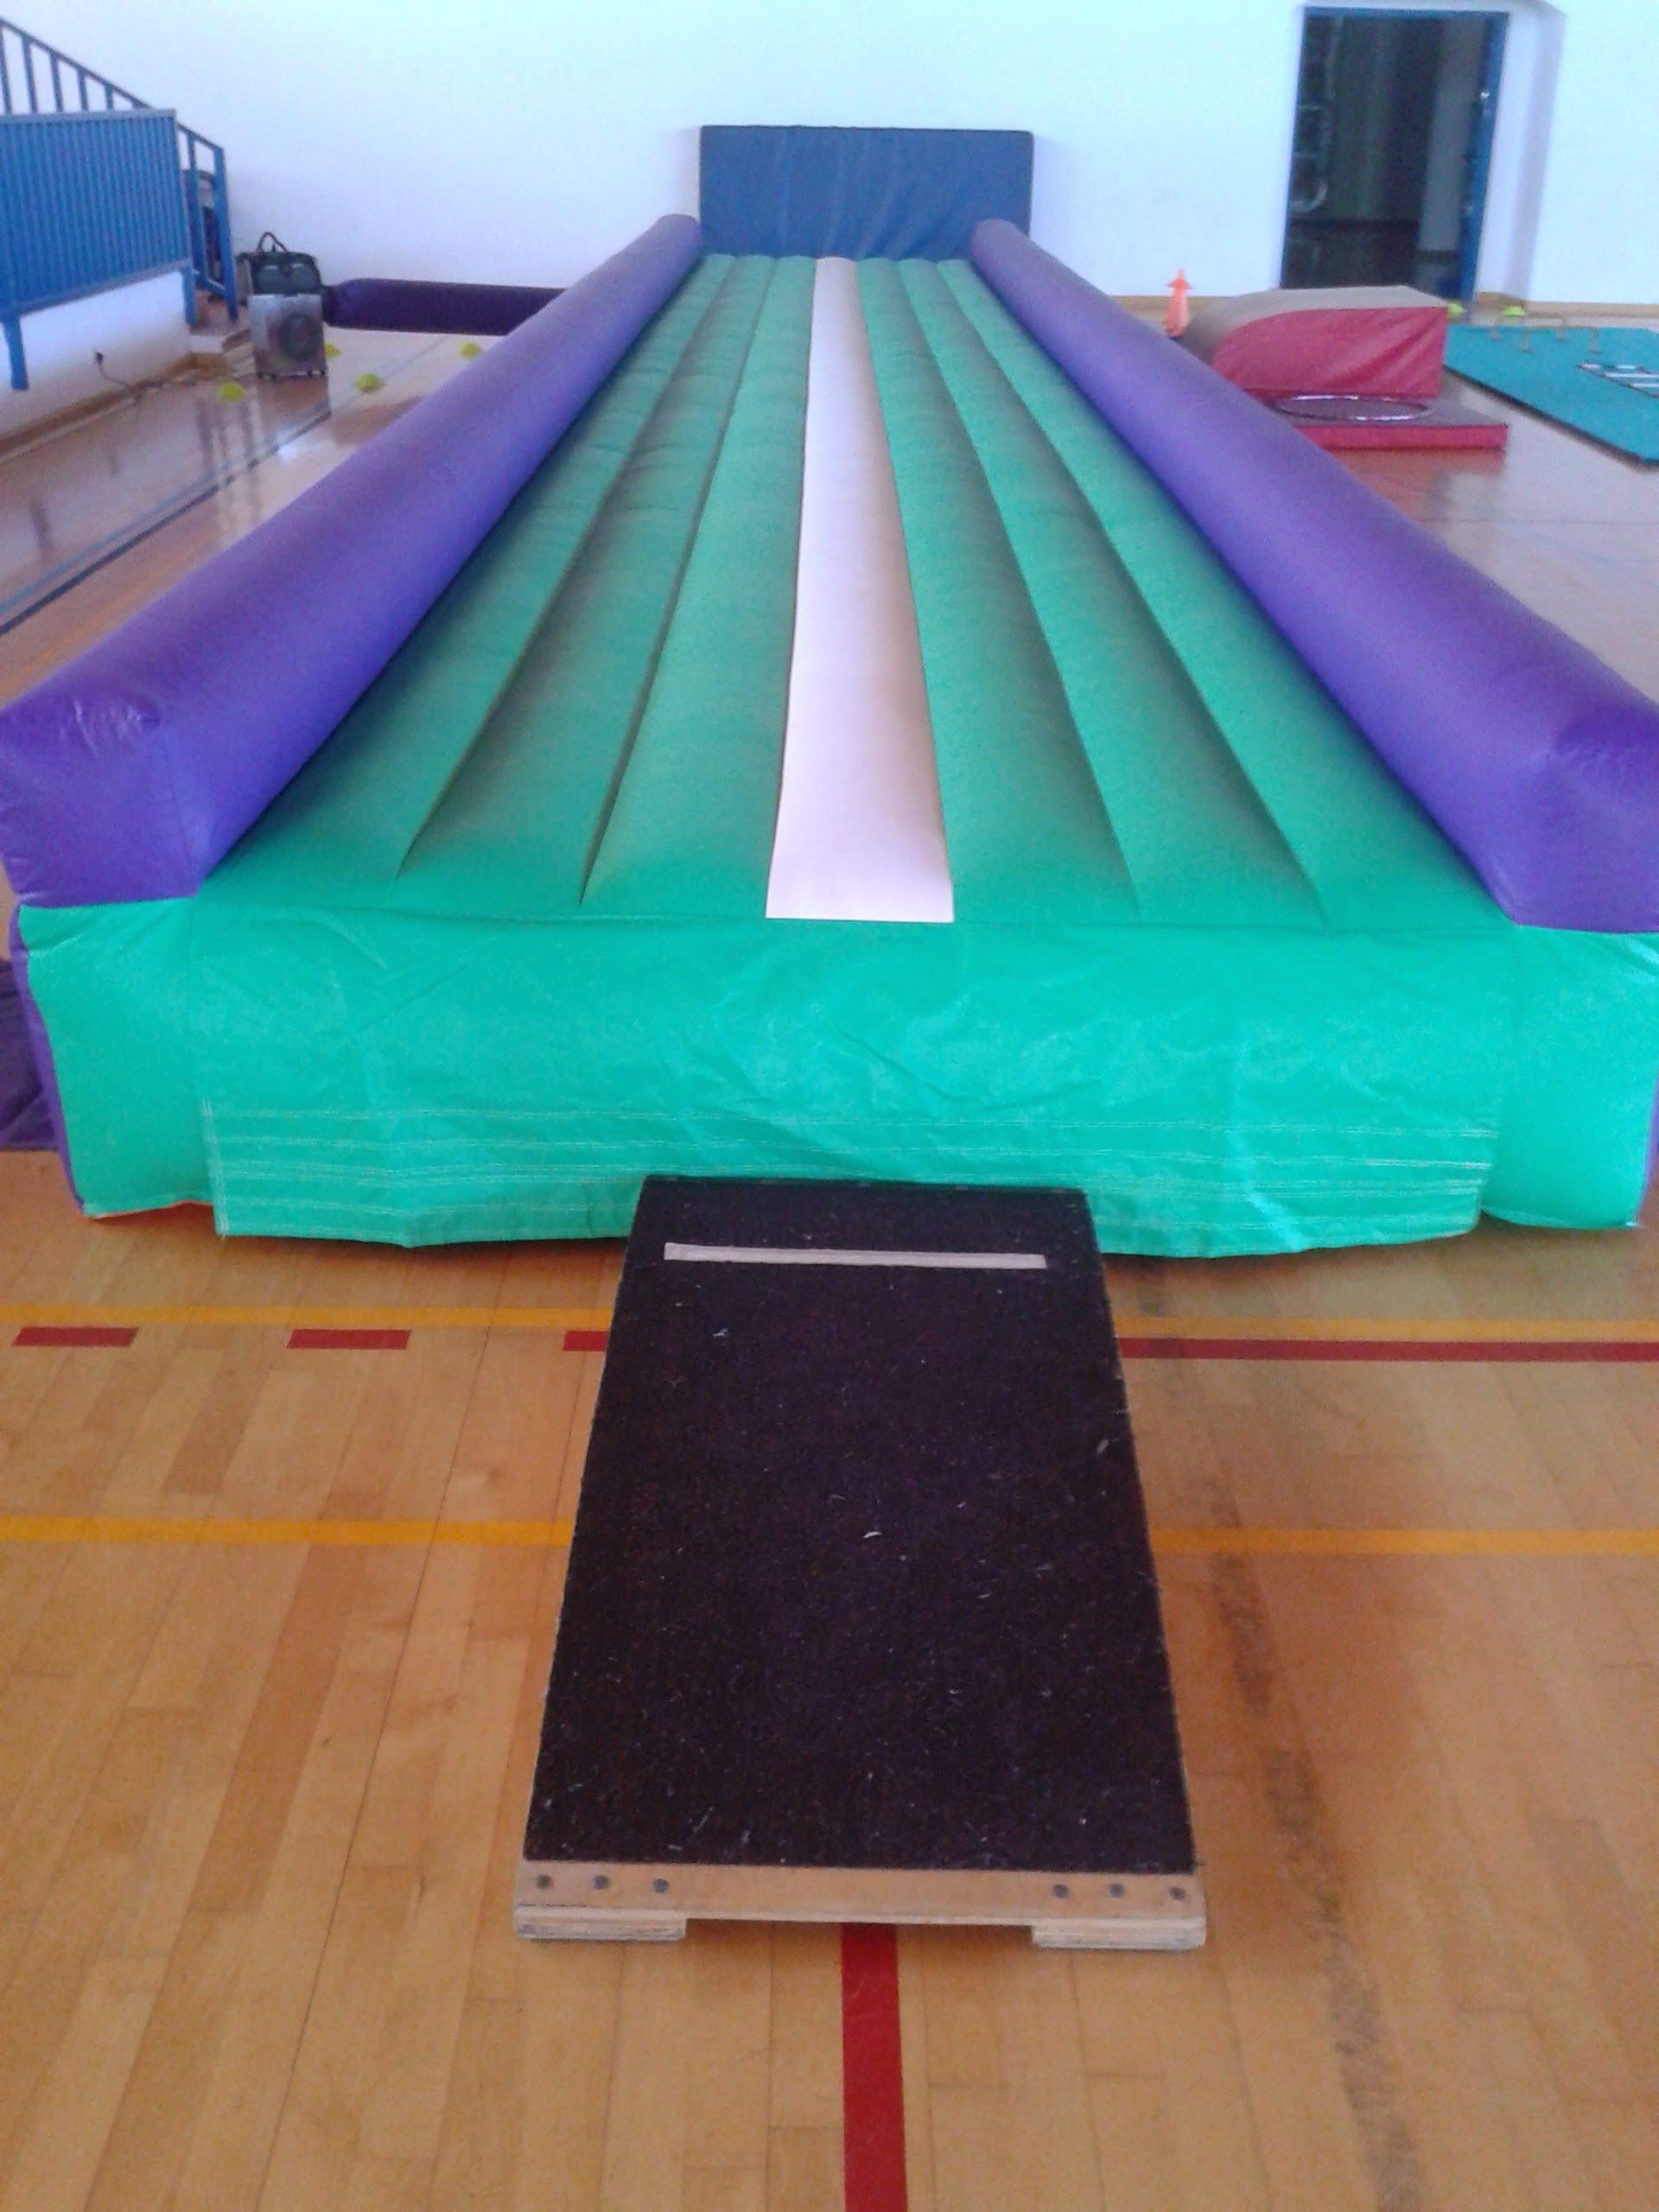 Tumble track ready for springboard practice